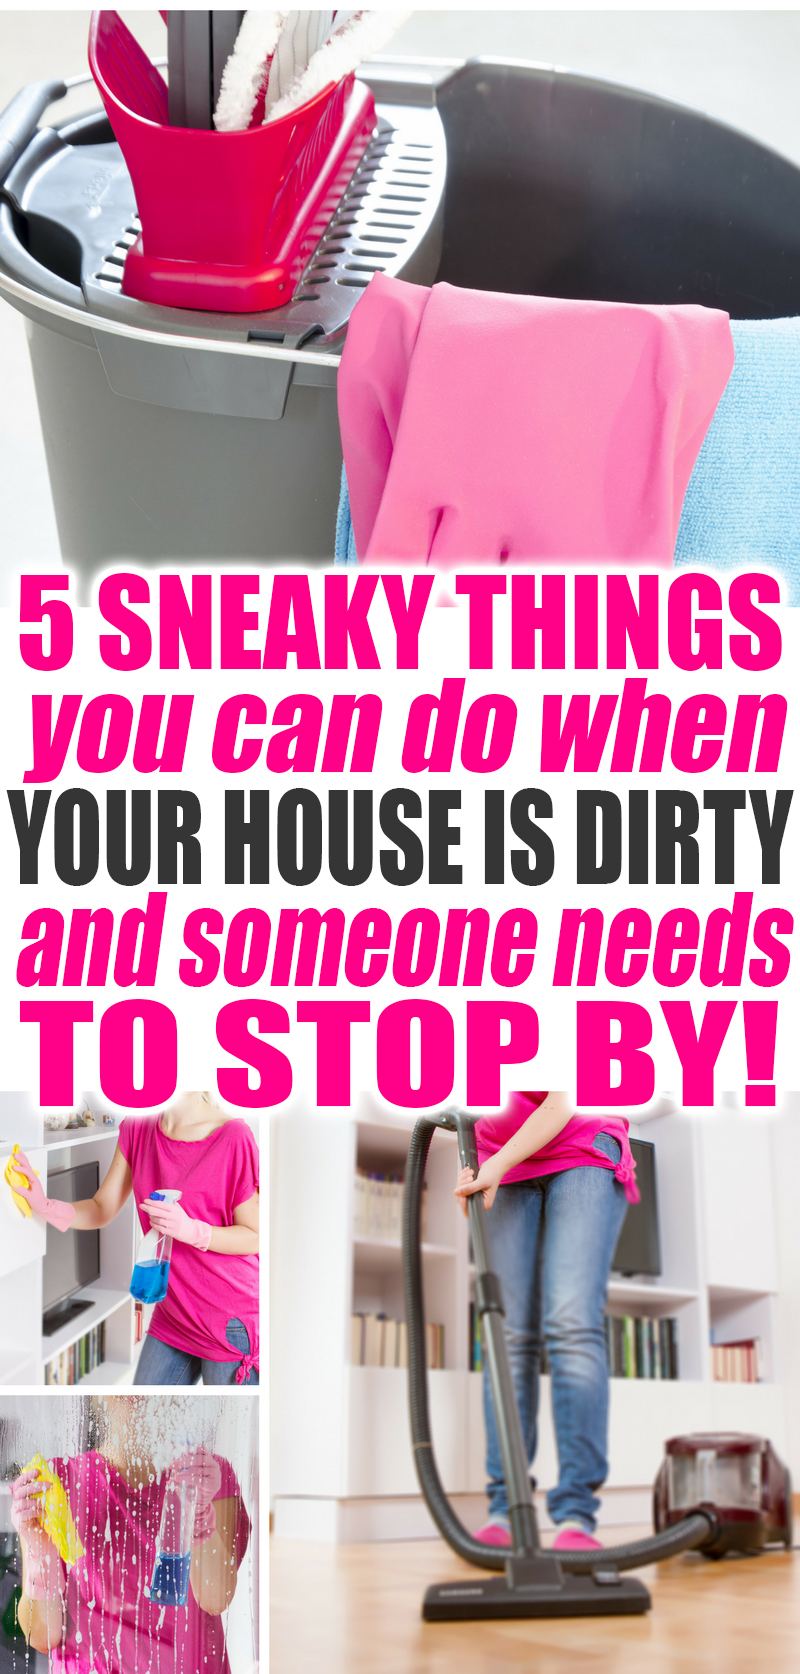 5 SNEAKY Cleaning Tricks You Can Do When Your House is Dirty and Someone Needs to Stop By! Use these tips to make it seem like you are busy getting it done! Cleaning | Cleaning Tips | Cleaning Tricks | House Keeping | Cleaning Ideas